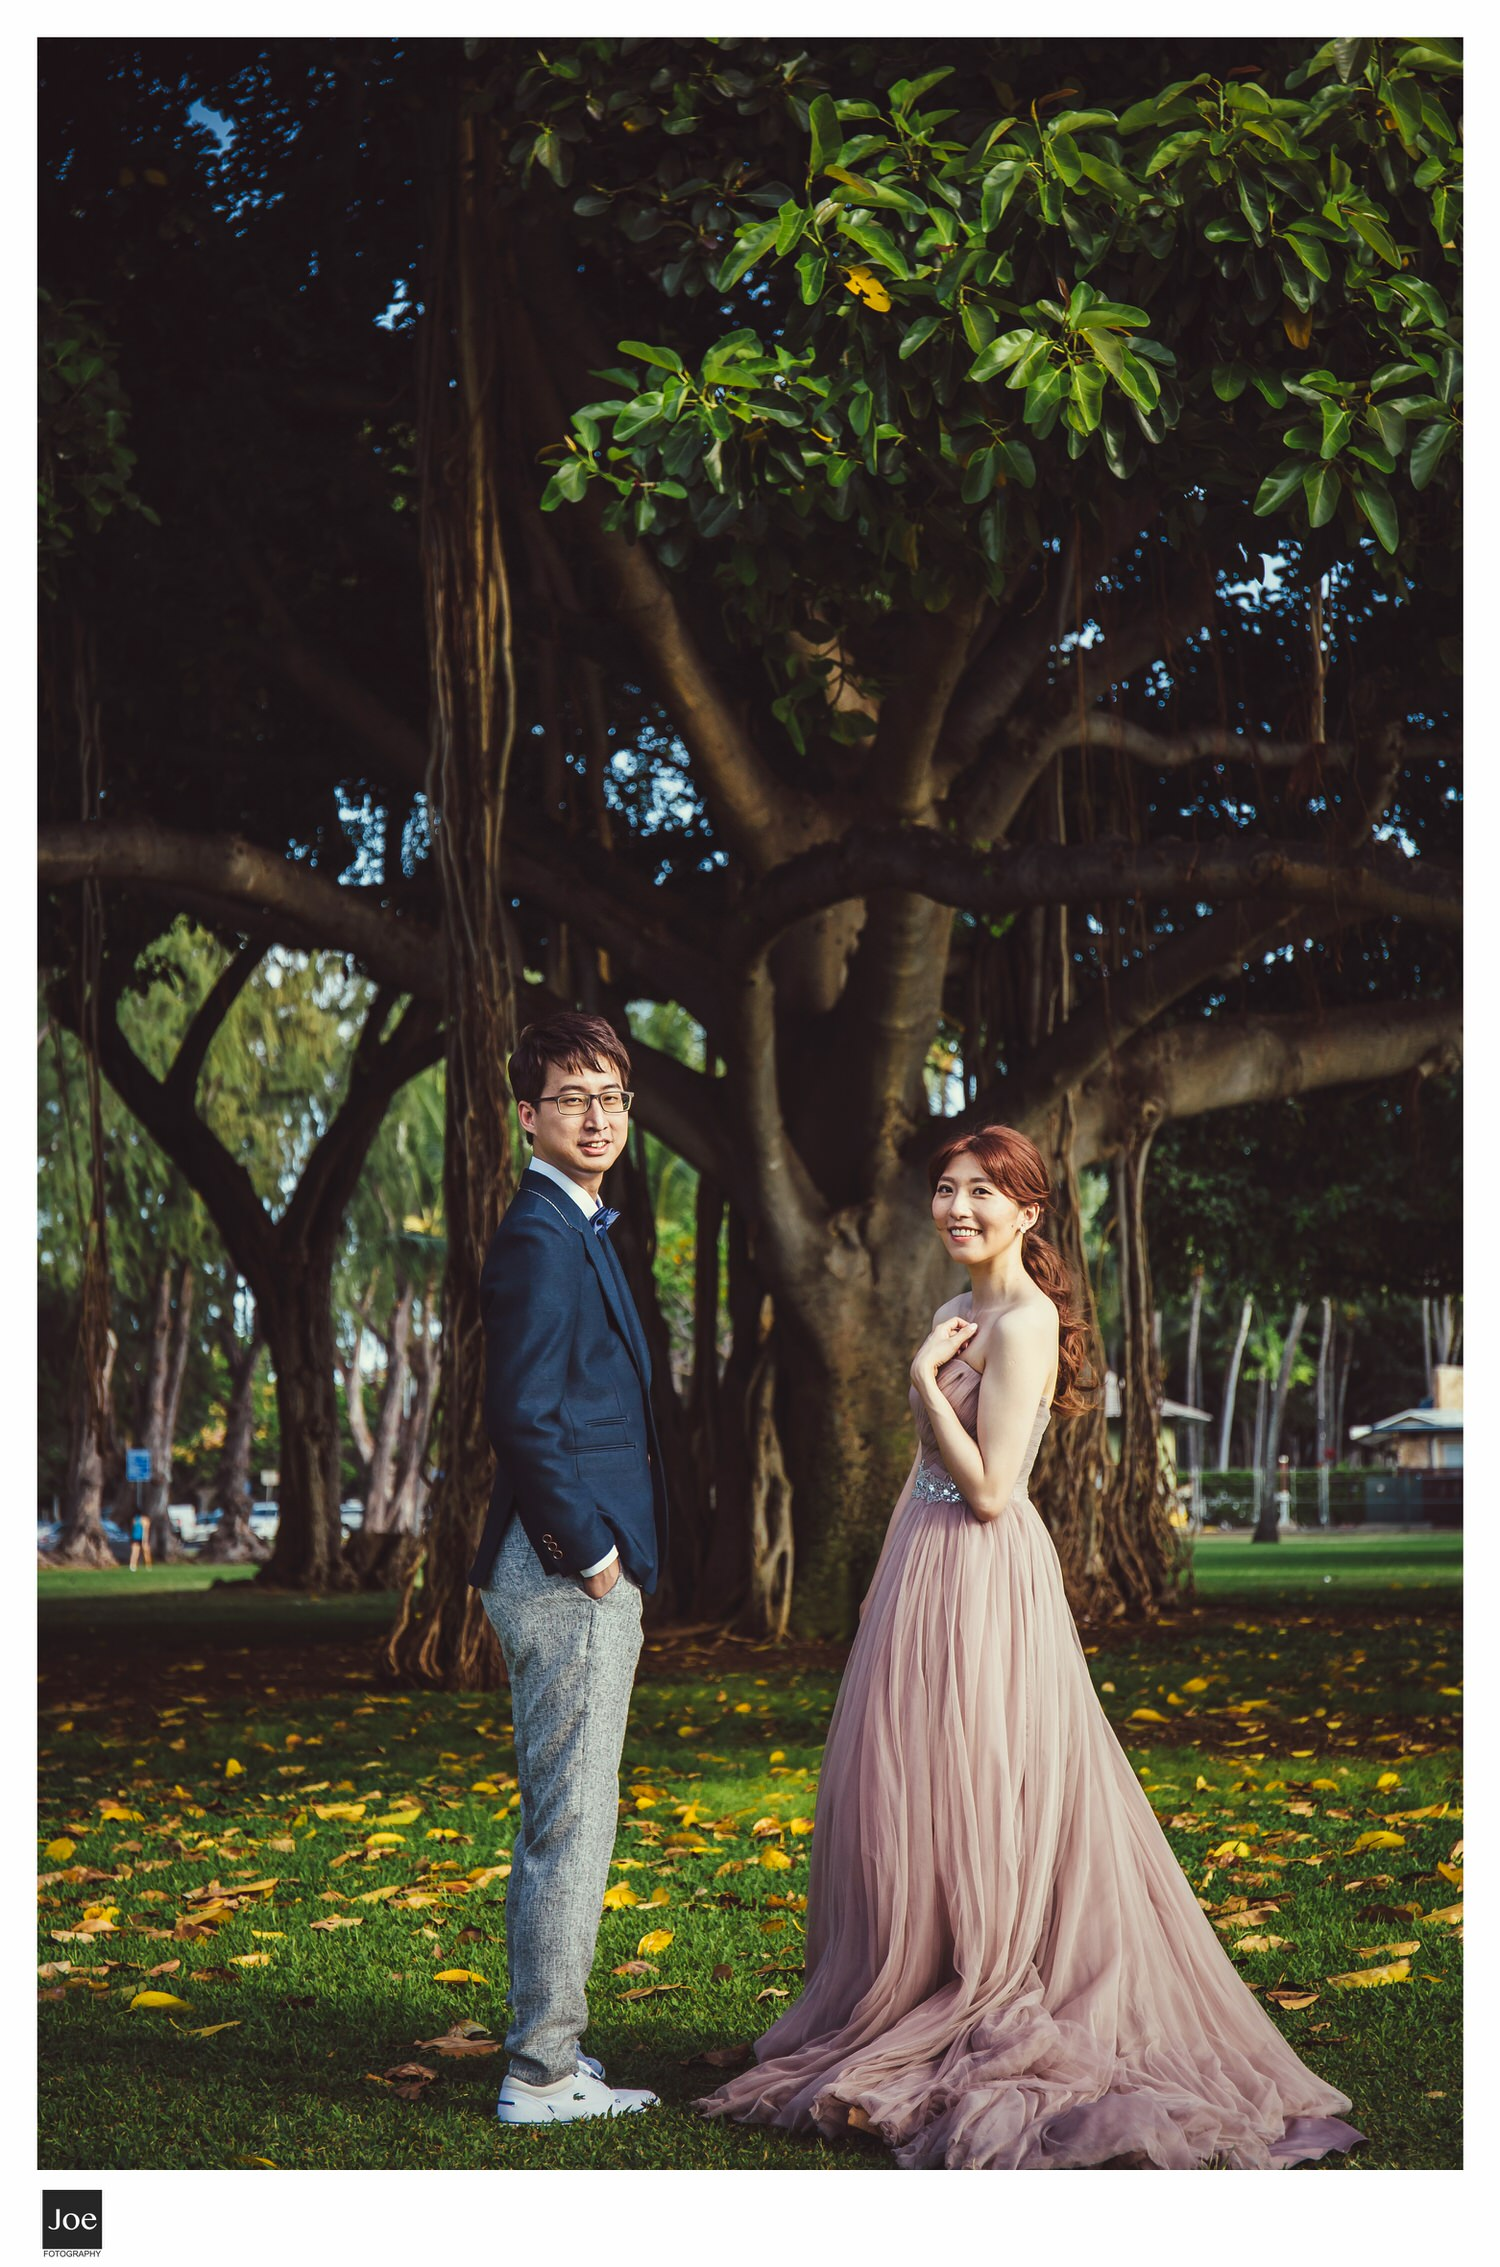 045-kapiolani-park-hawaii-pre-wedding-tiffany-tony-joe-fotography.jpg